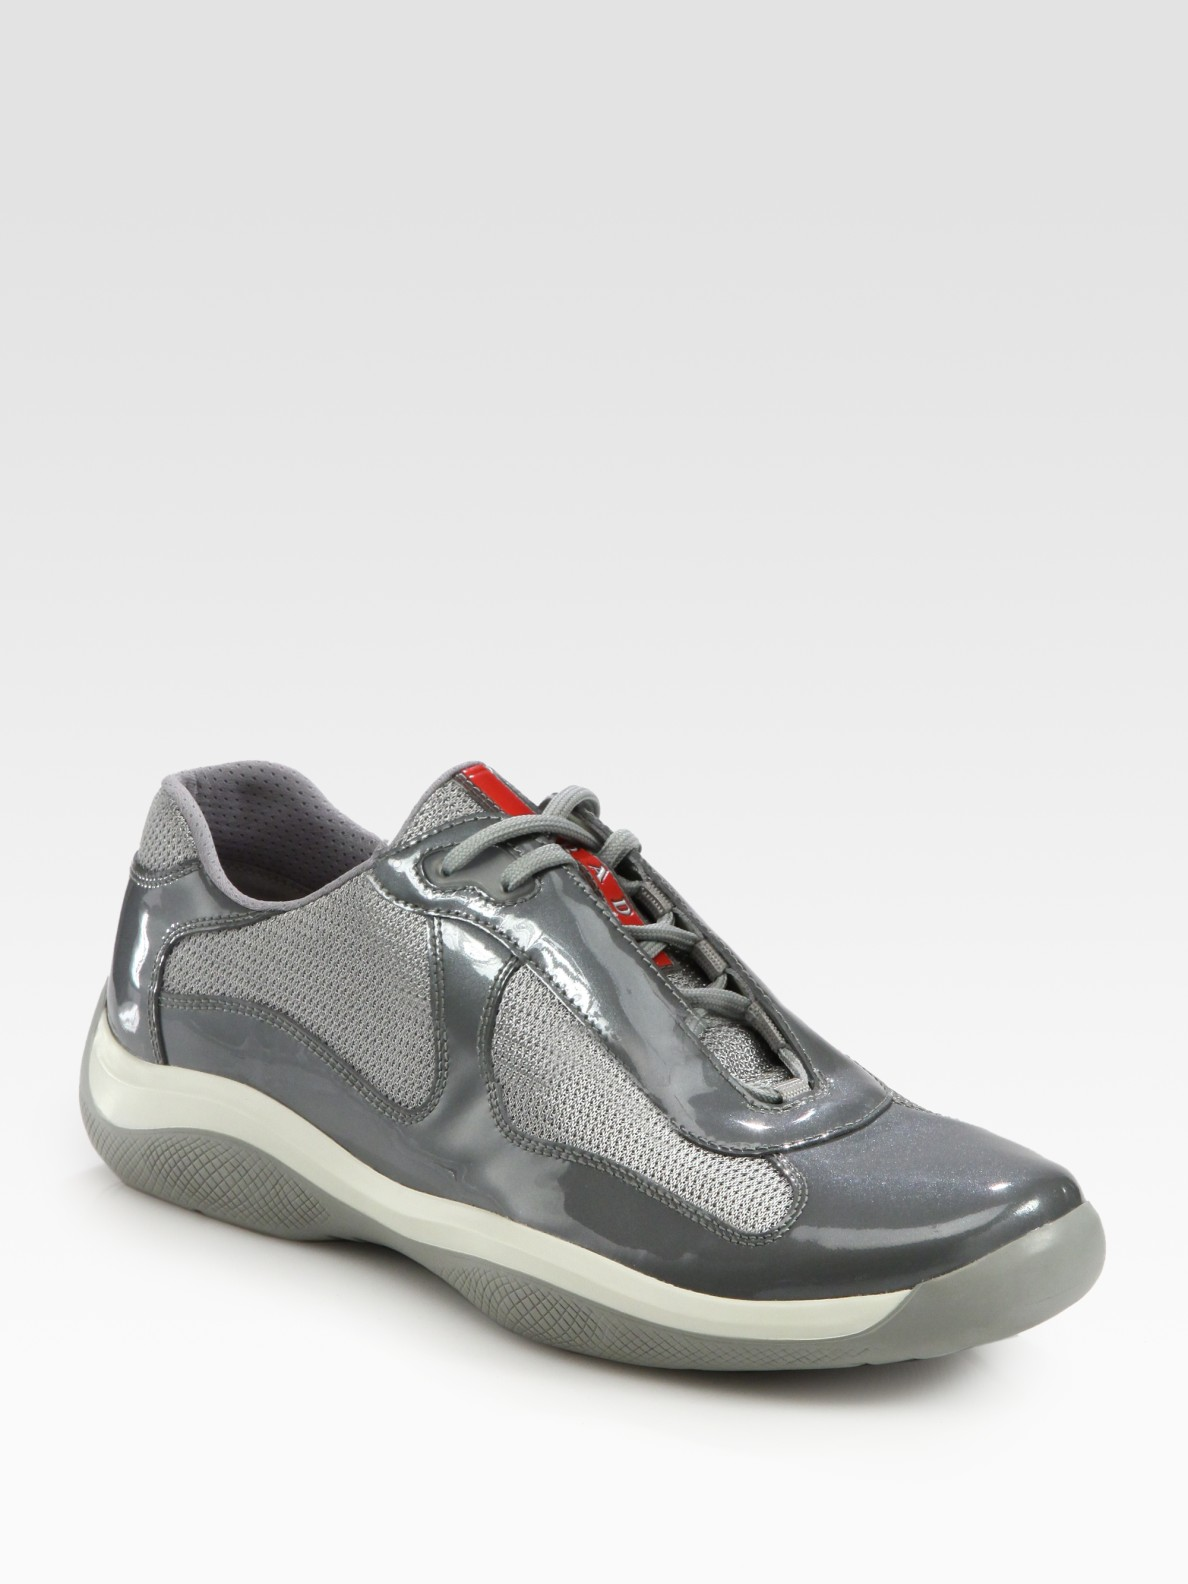 Prada Lace Up Sport Sneakers In Gray For Men Lyst